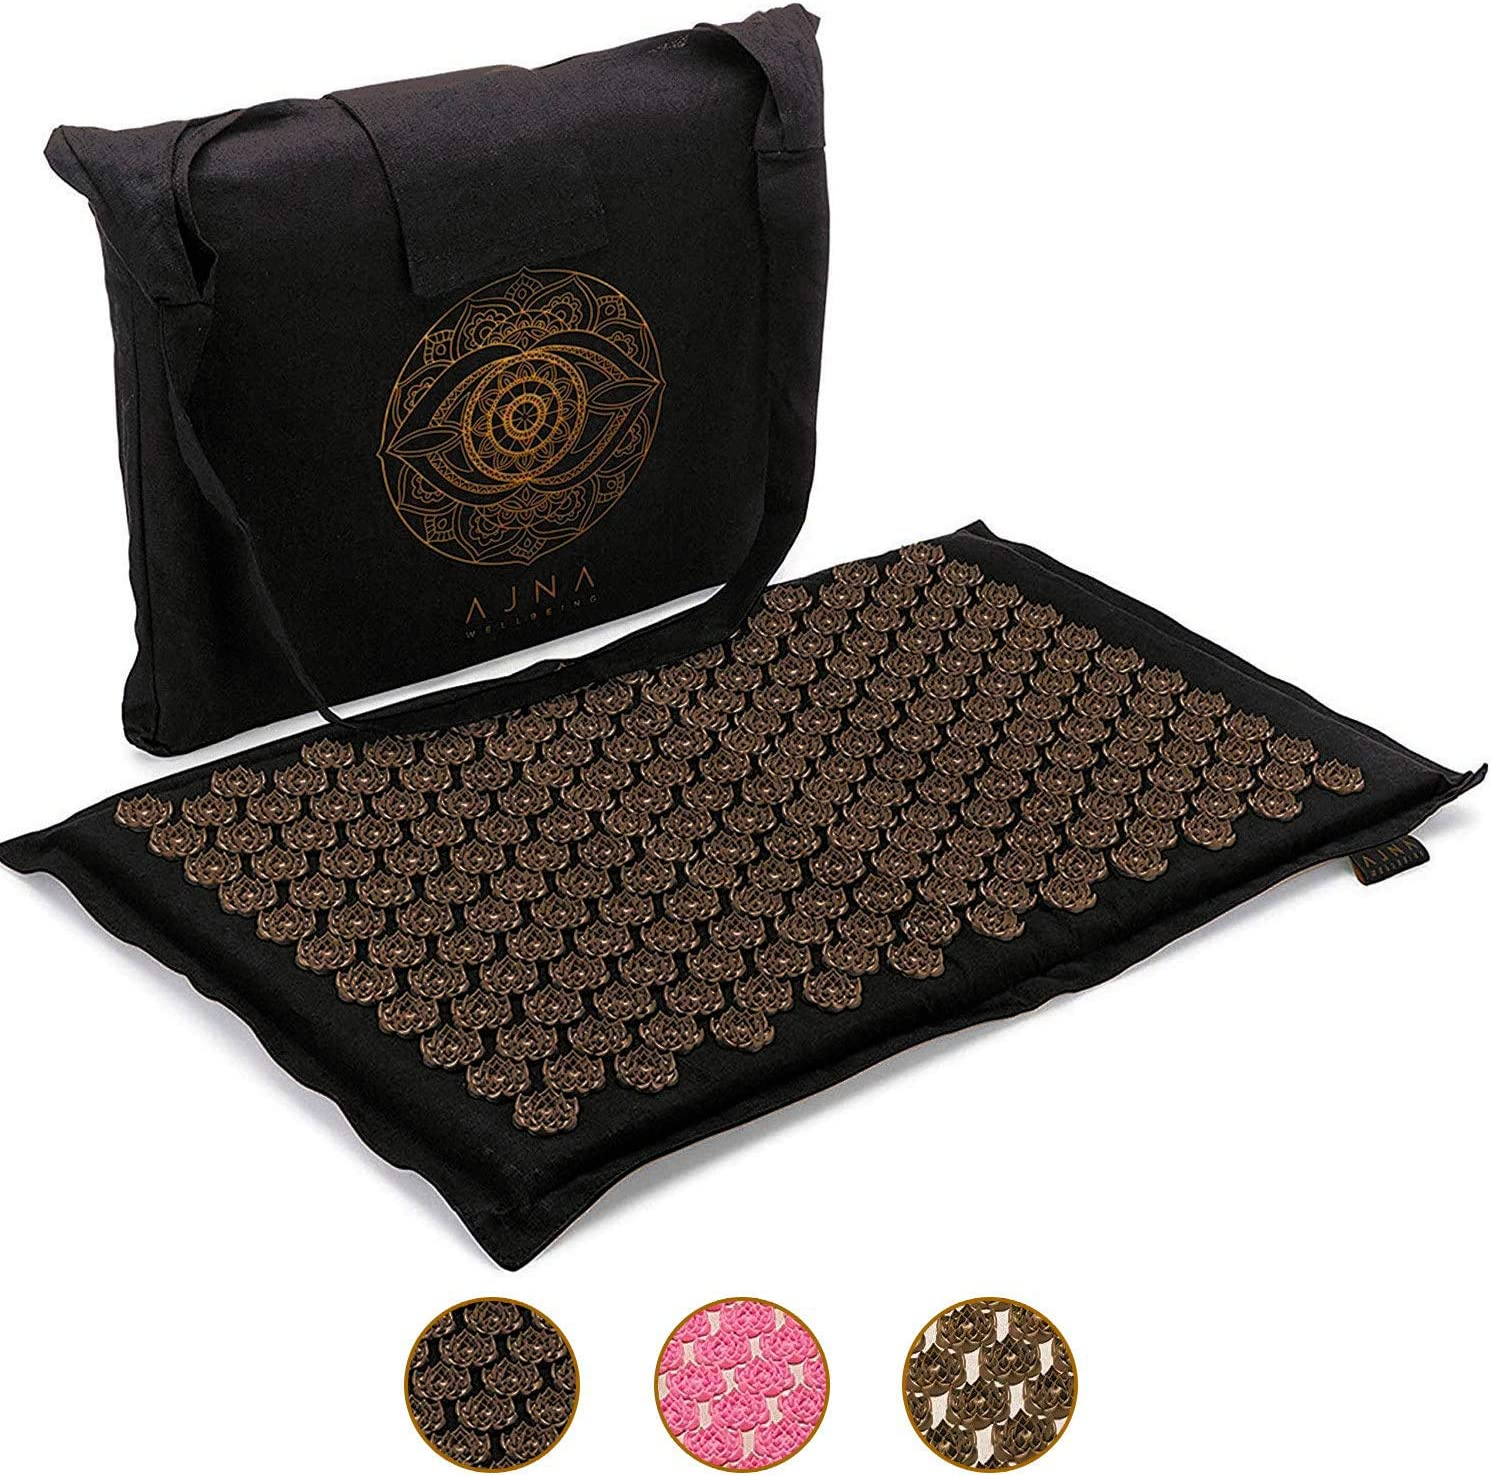 Acupressure Mat for Massage - Natural Cotton Acupuncture Mat & Bag (Midnight)